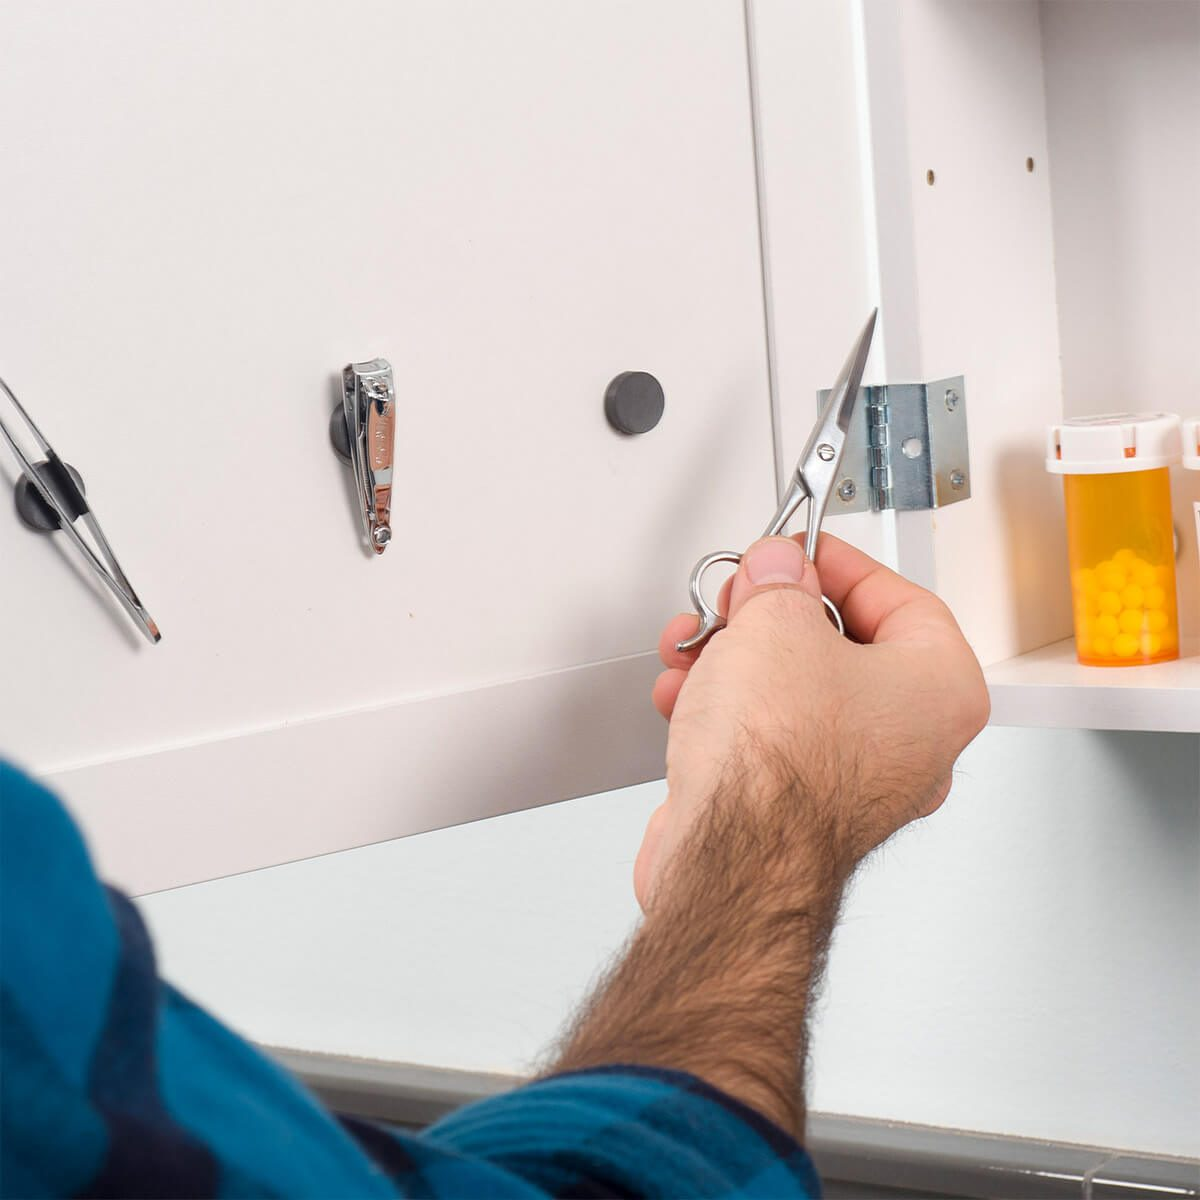 mount magnets inside a medicine cabinet